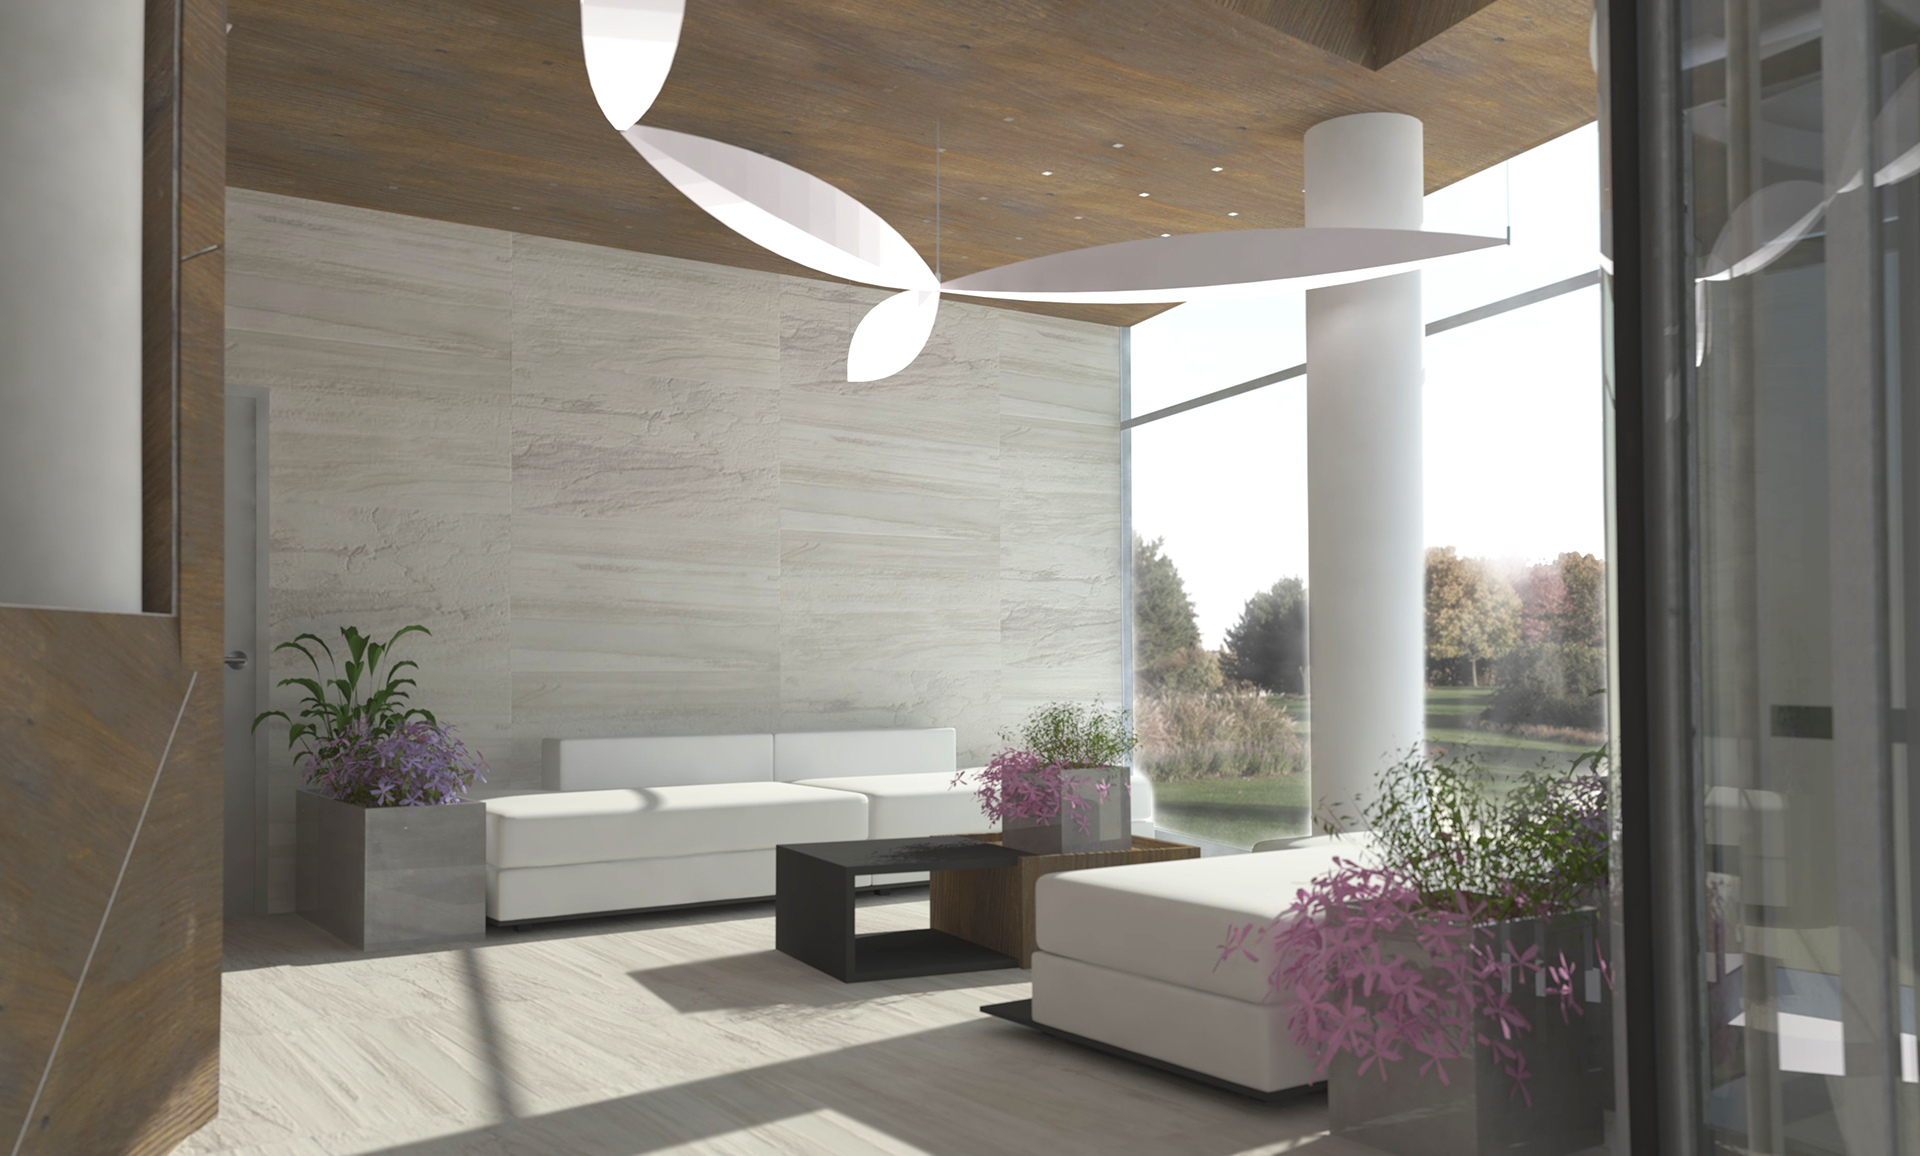 SPA Kaliningrad interior project Option 2